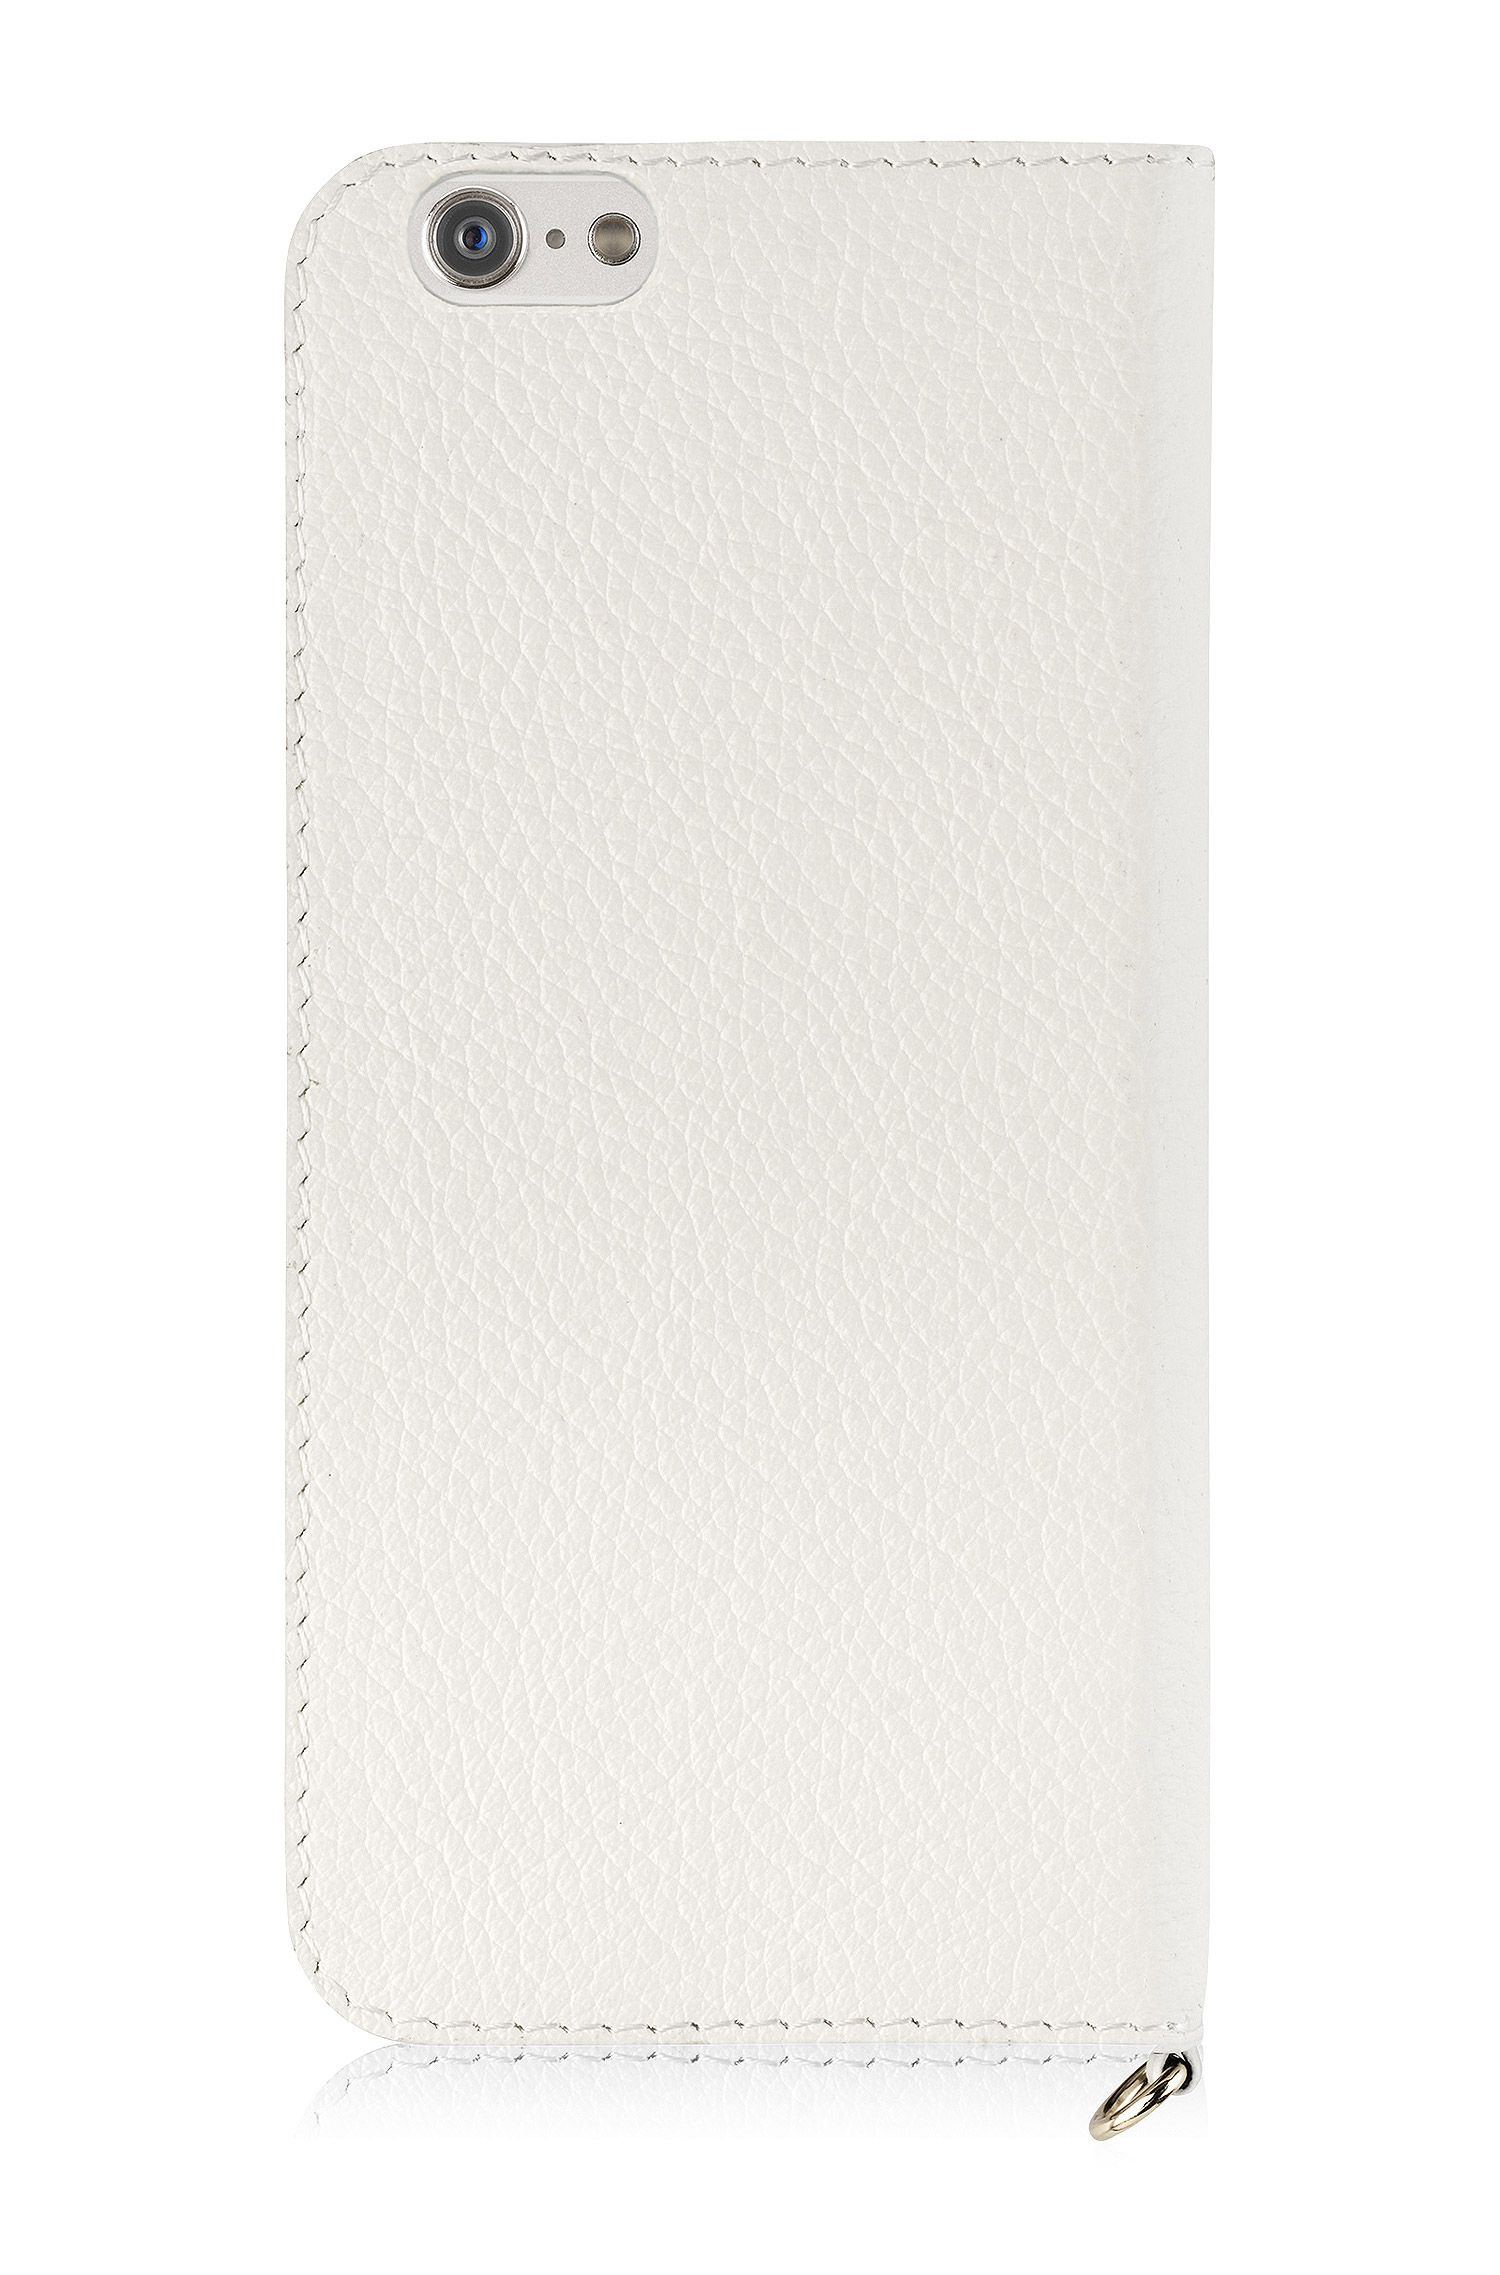 Booklet Case ´Folianti IP6 4.7 - White` für iPhone 6 4.7, Weiß